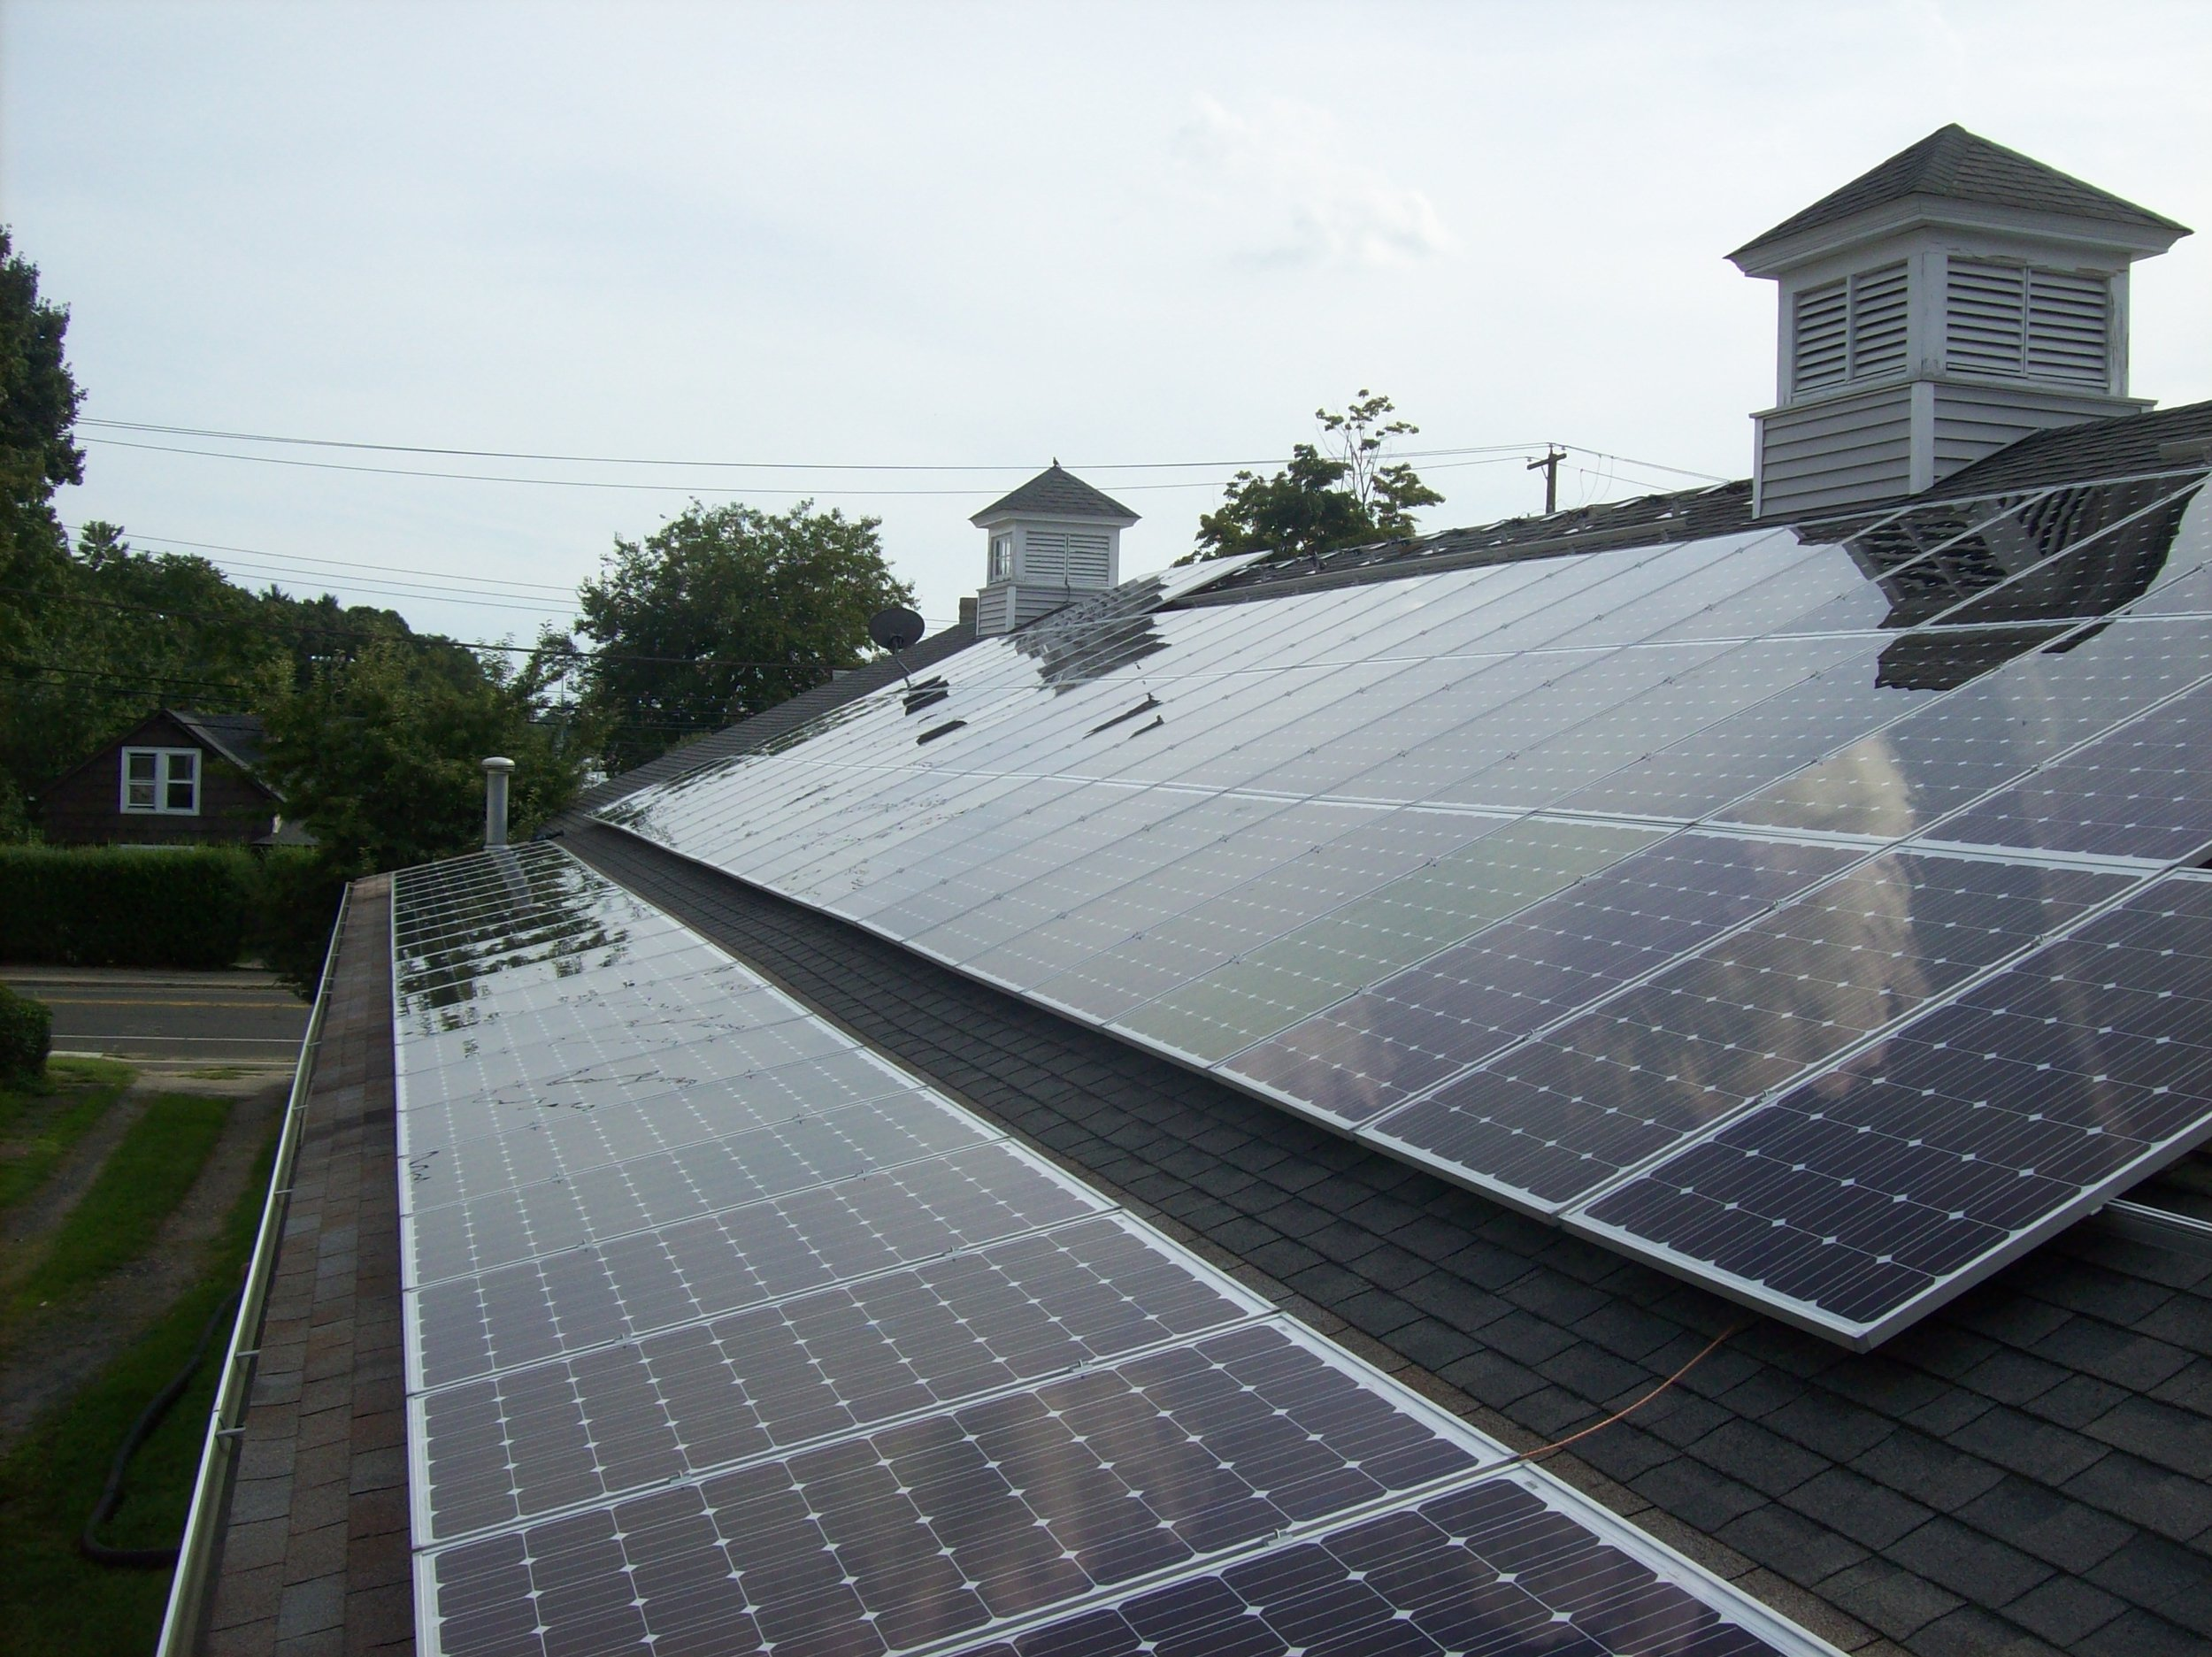 perkins-rouge-paint-company-34-kw-solar-electric-system-milford-ct.jpg